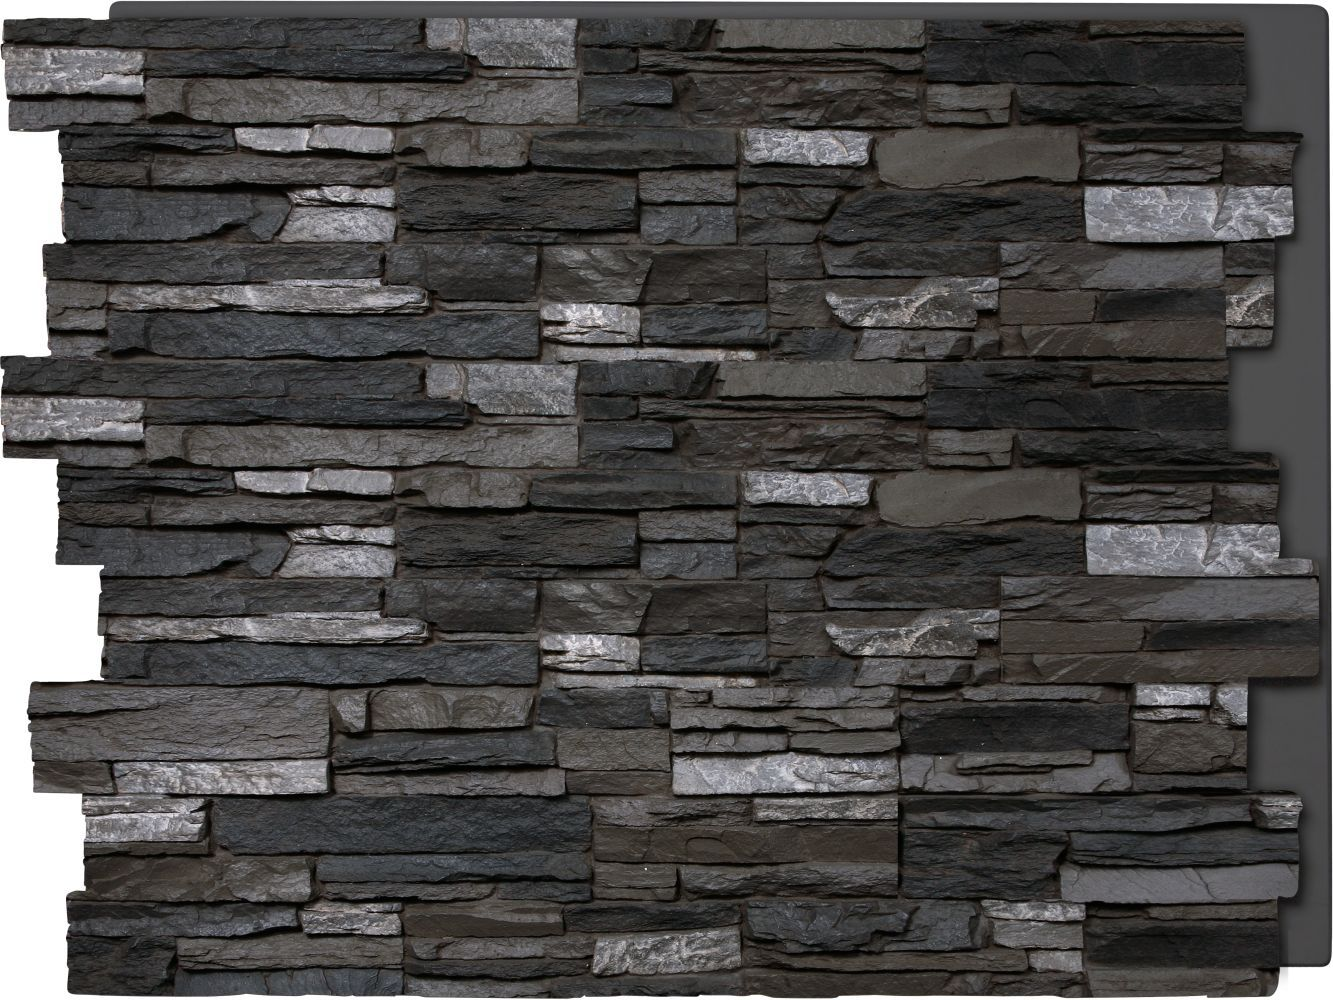 Airstone Home Depot Airstone Tile Artificial Brick Siding Artificial Brick Stone Artificial Exterior Stone A Stone Veneer Siding Stone Veneer Faux Stone Panels